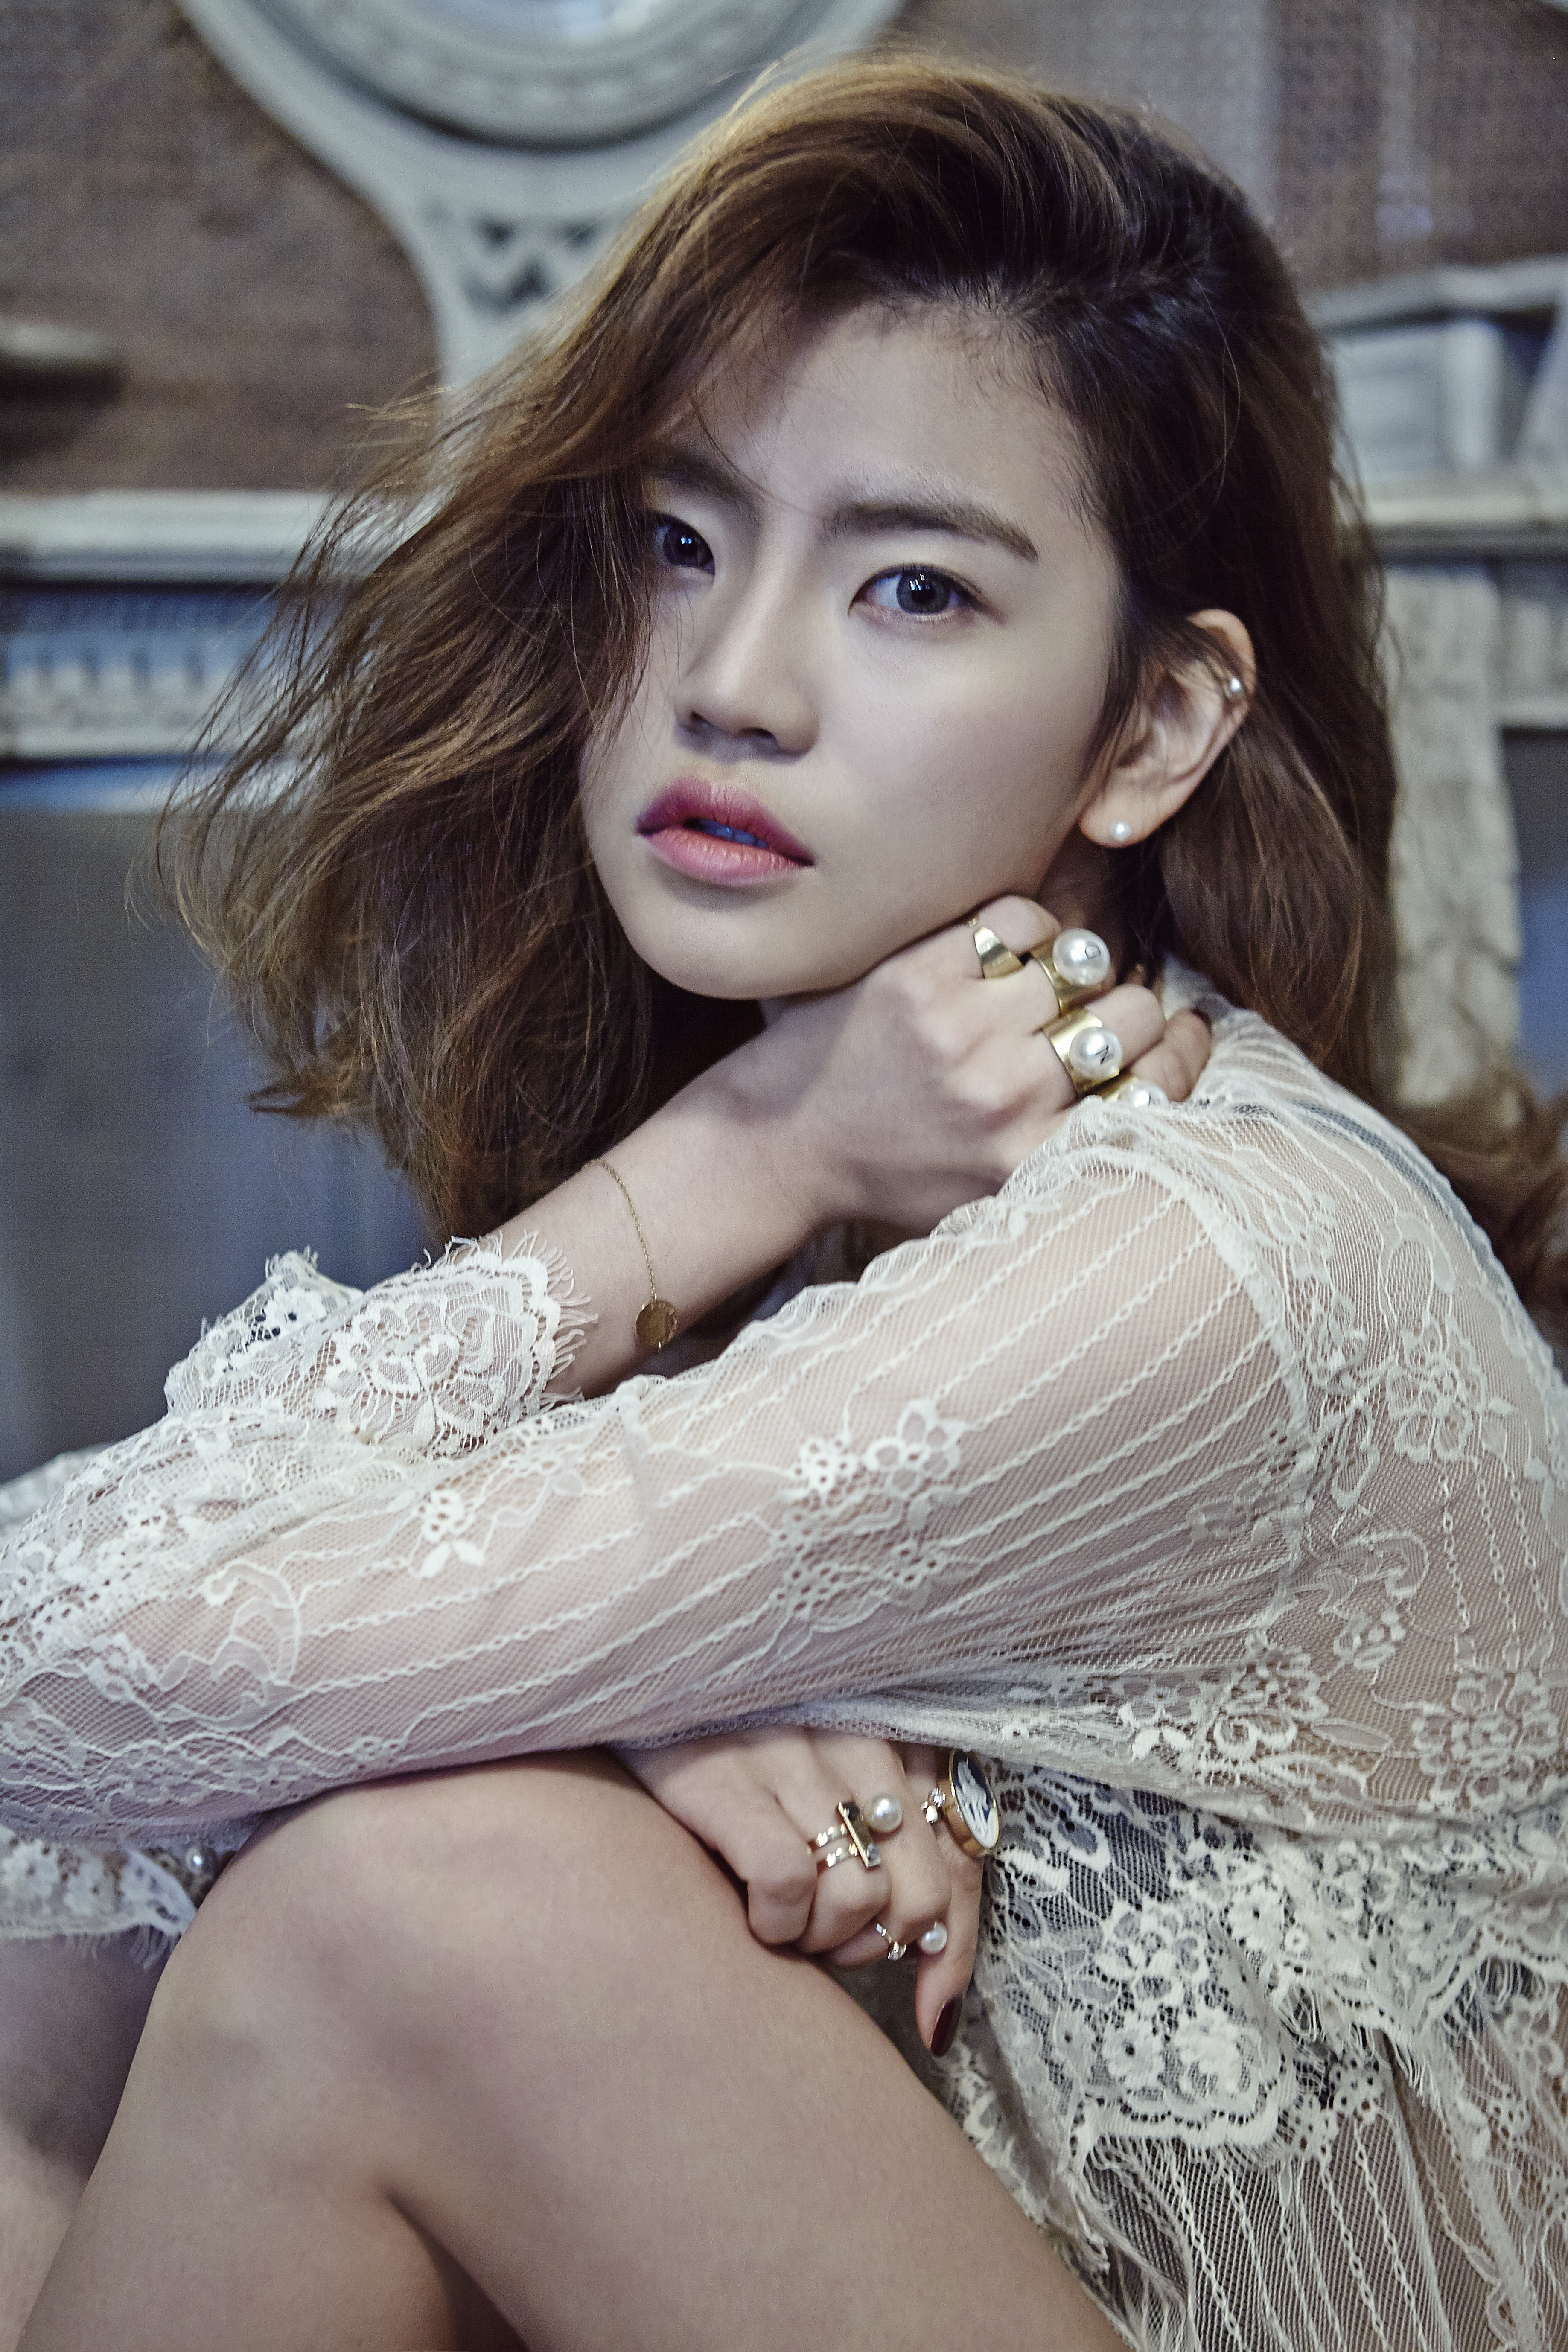 Awesome Anda Image Kpop wallpapers to download for free greenvirals